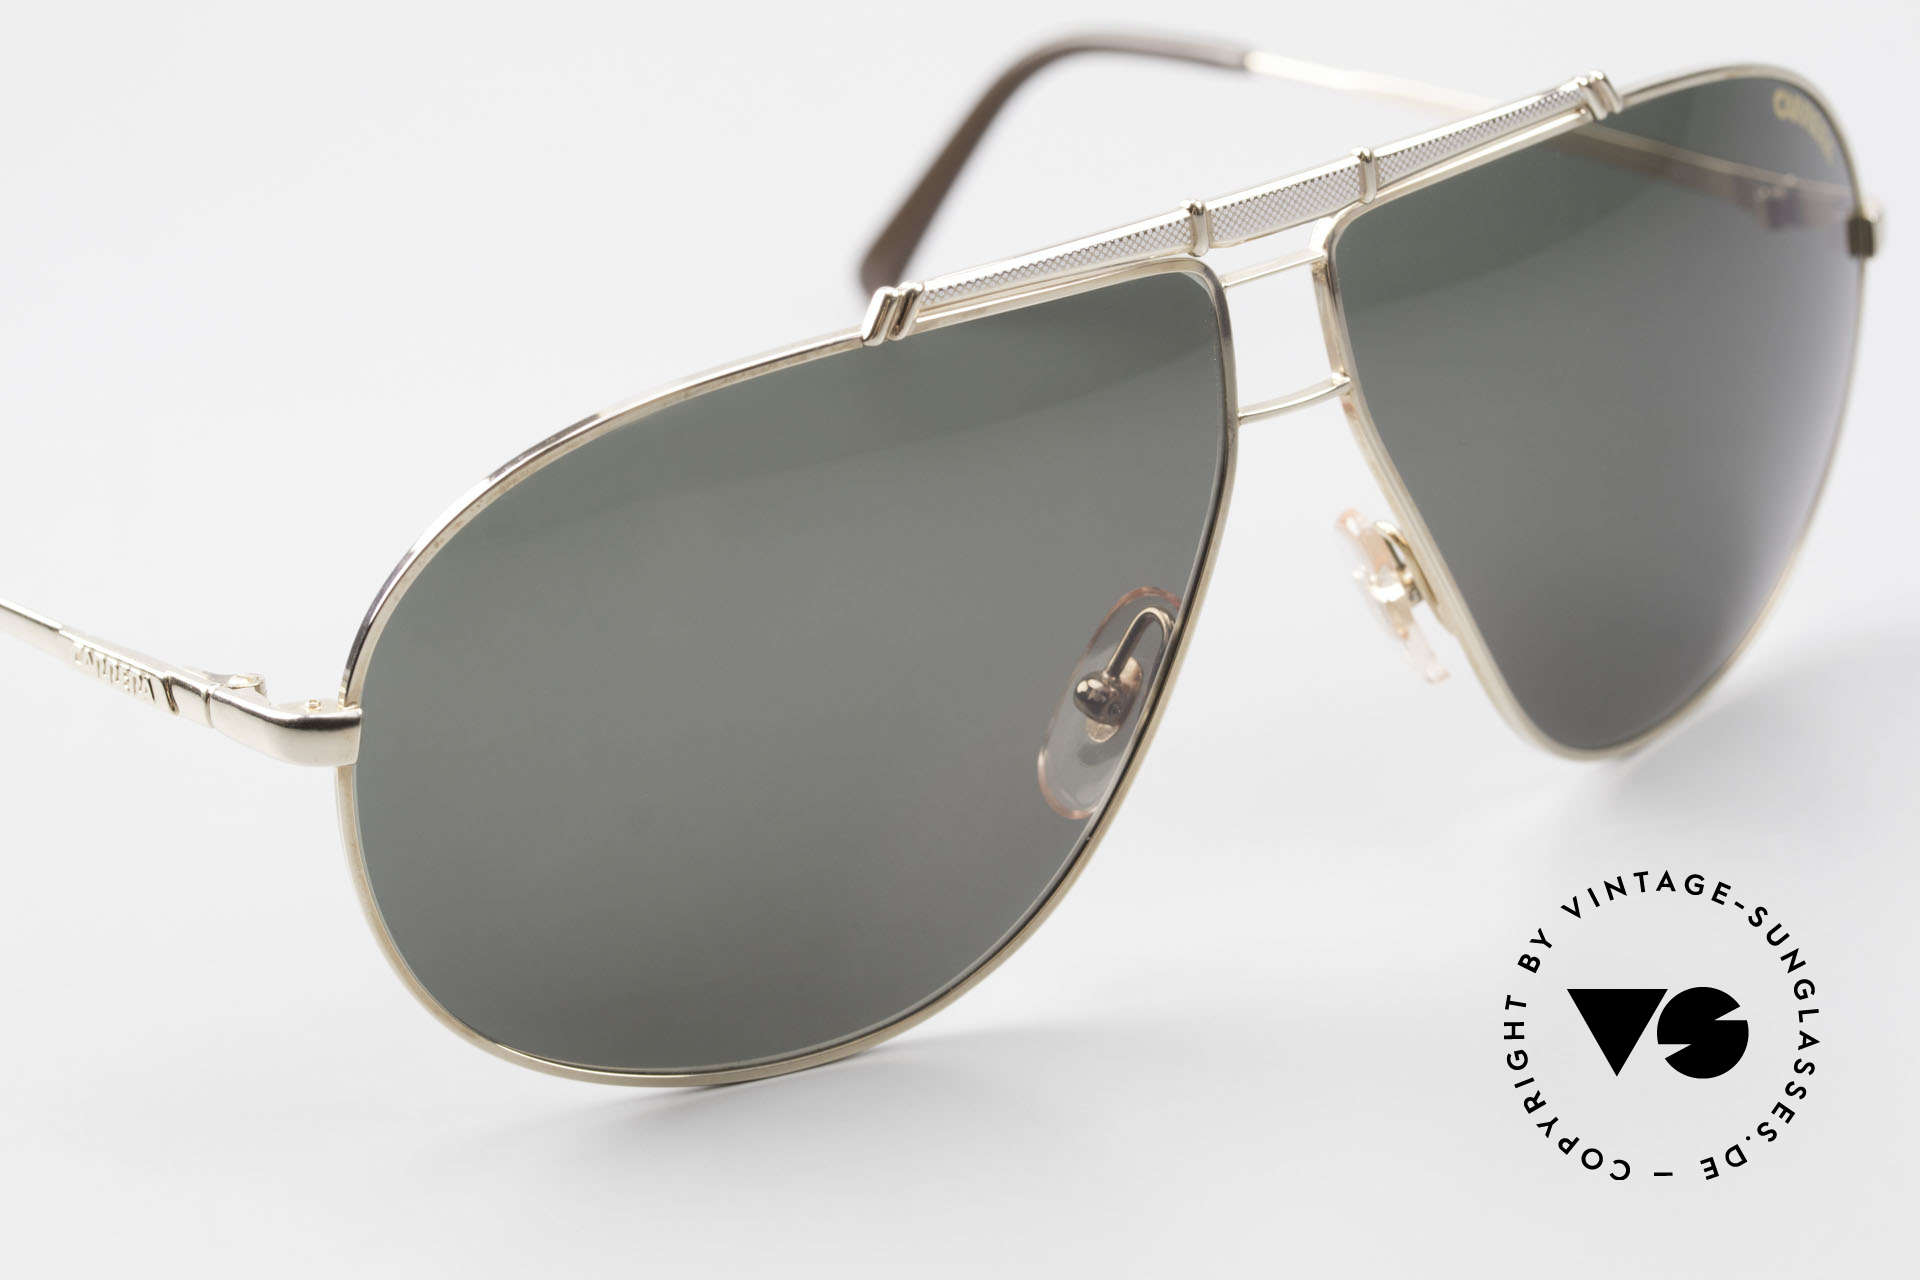 Carrera 5401 Large Aviator Shades Extra Lenses, unworn, NOS (like all our VINTAGE Carrera sunglasses), Made for Men